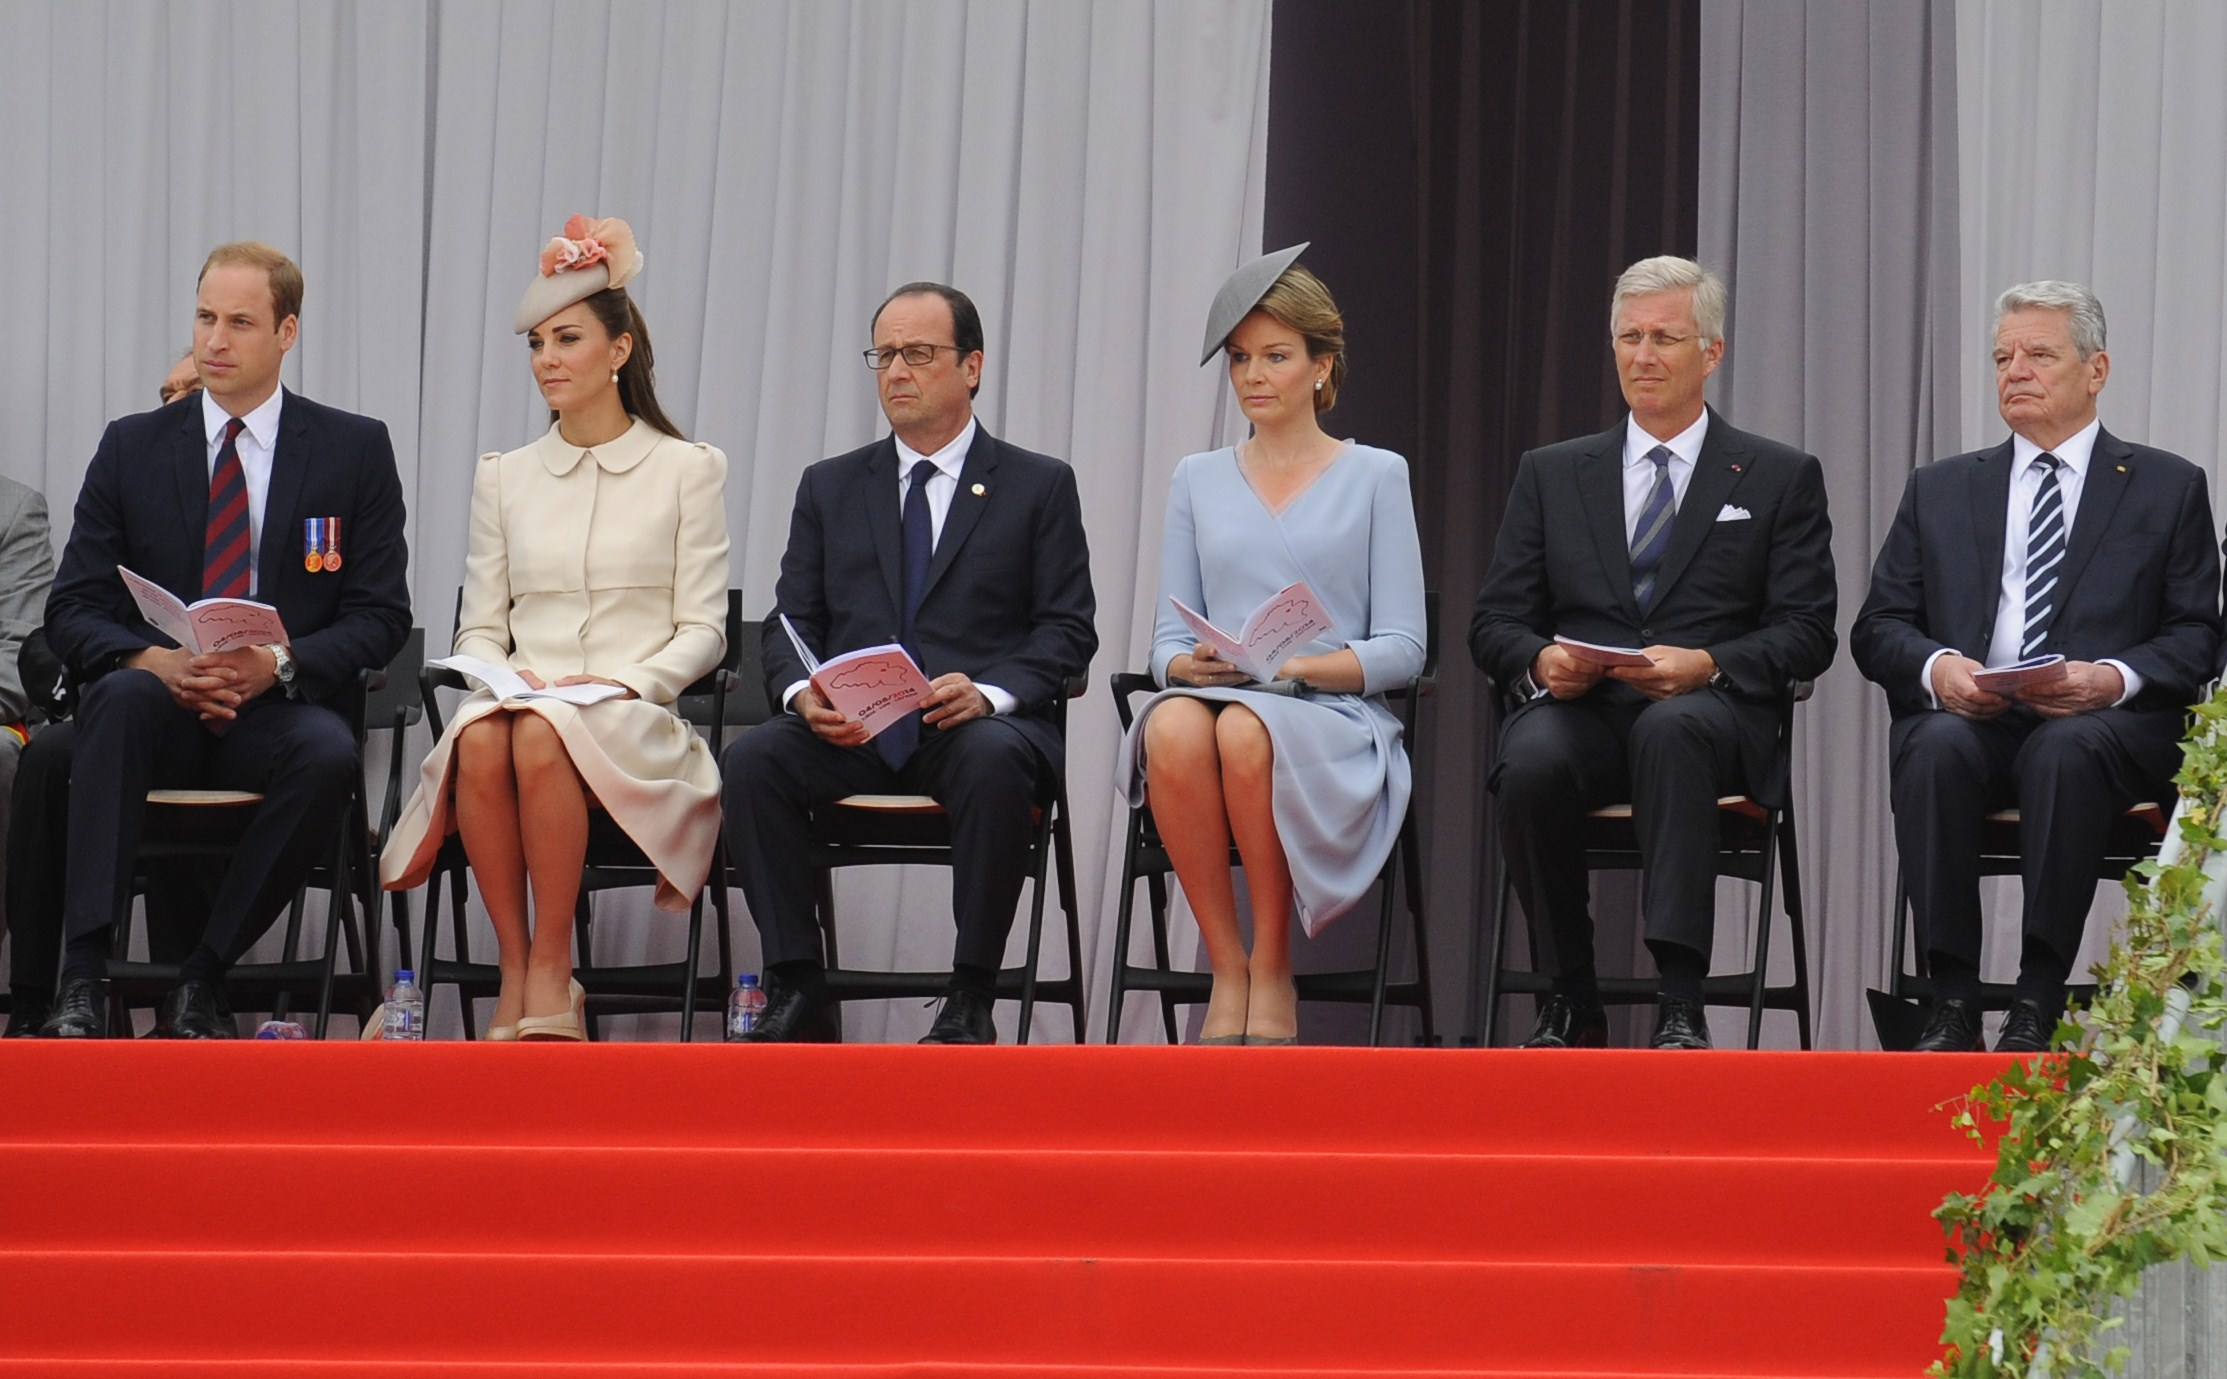 Britain's Prince William, his wife Catherine, French President Francois Hollande, Queen Mathilde of Belgium, her husband King Philippe and German President Joachim Gauck attend on August 4, 2014 in Liege, Belgium, commemorations marking 100 years since the invasion of Belgium by Germany at the start of World War I.